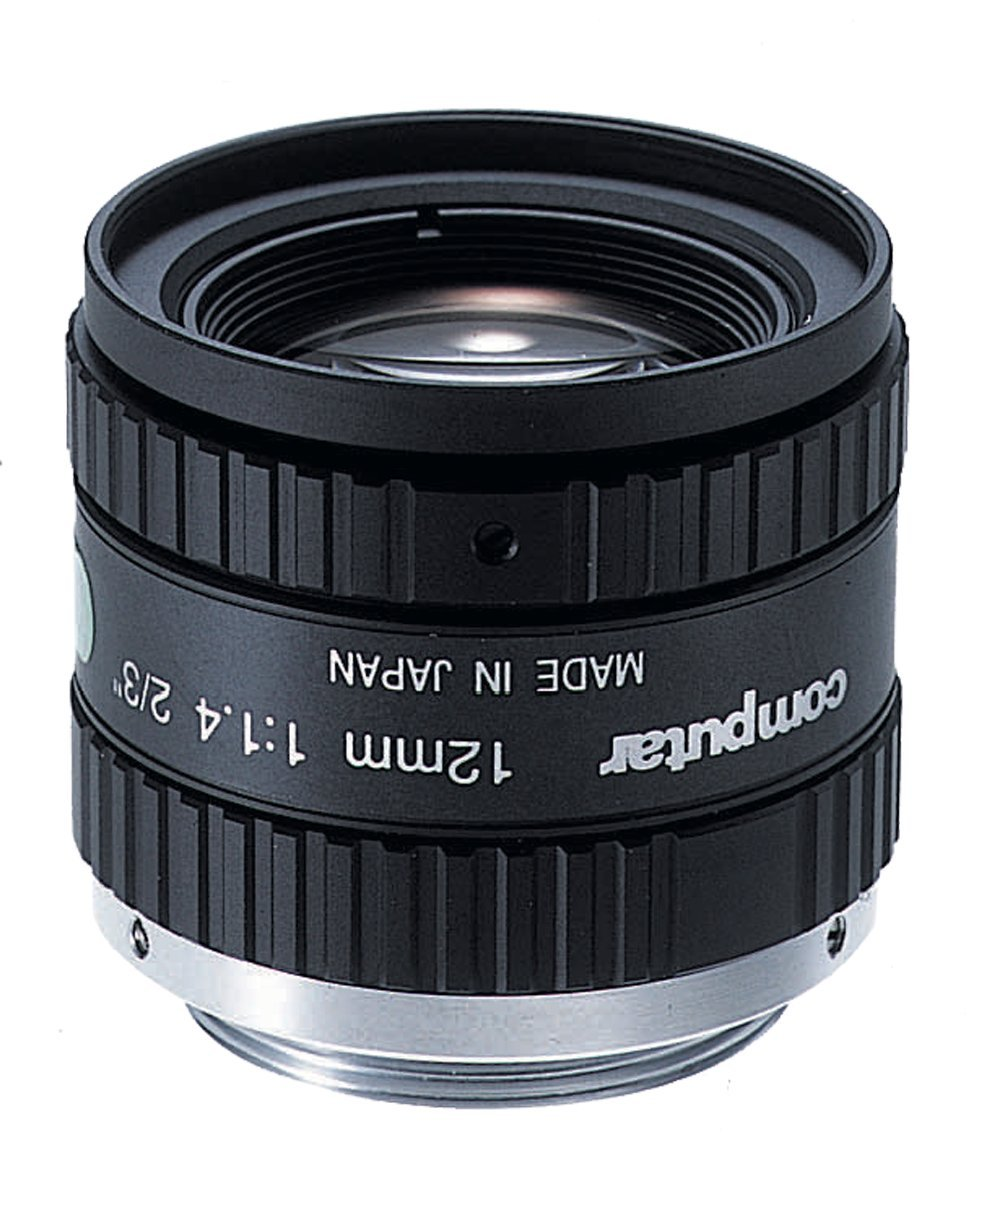 Computar M1214-MP2 2/3'' 12mm F1.4 Manual Iris C-Mount Lens, 1.5 Megapixel Rated by Computar